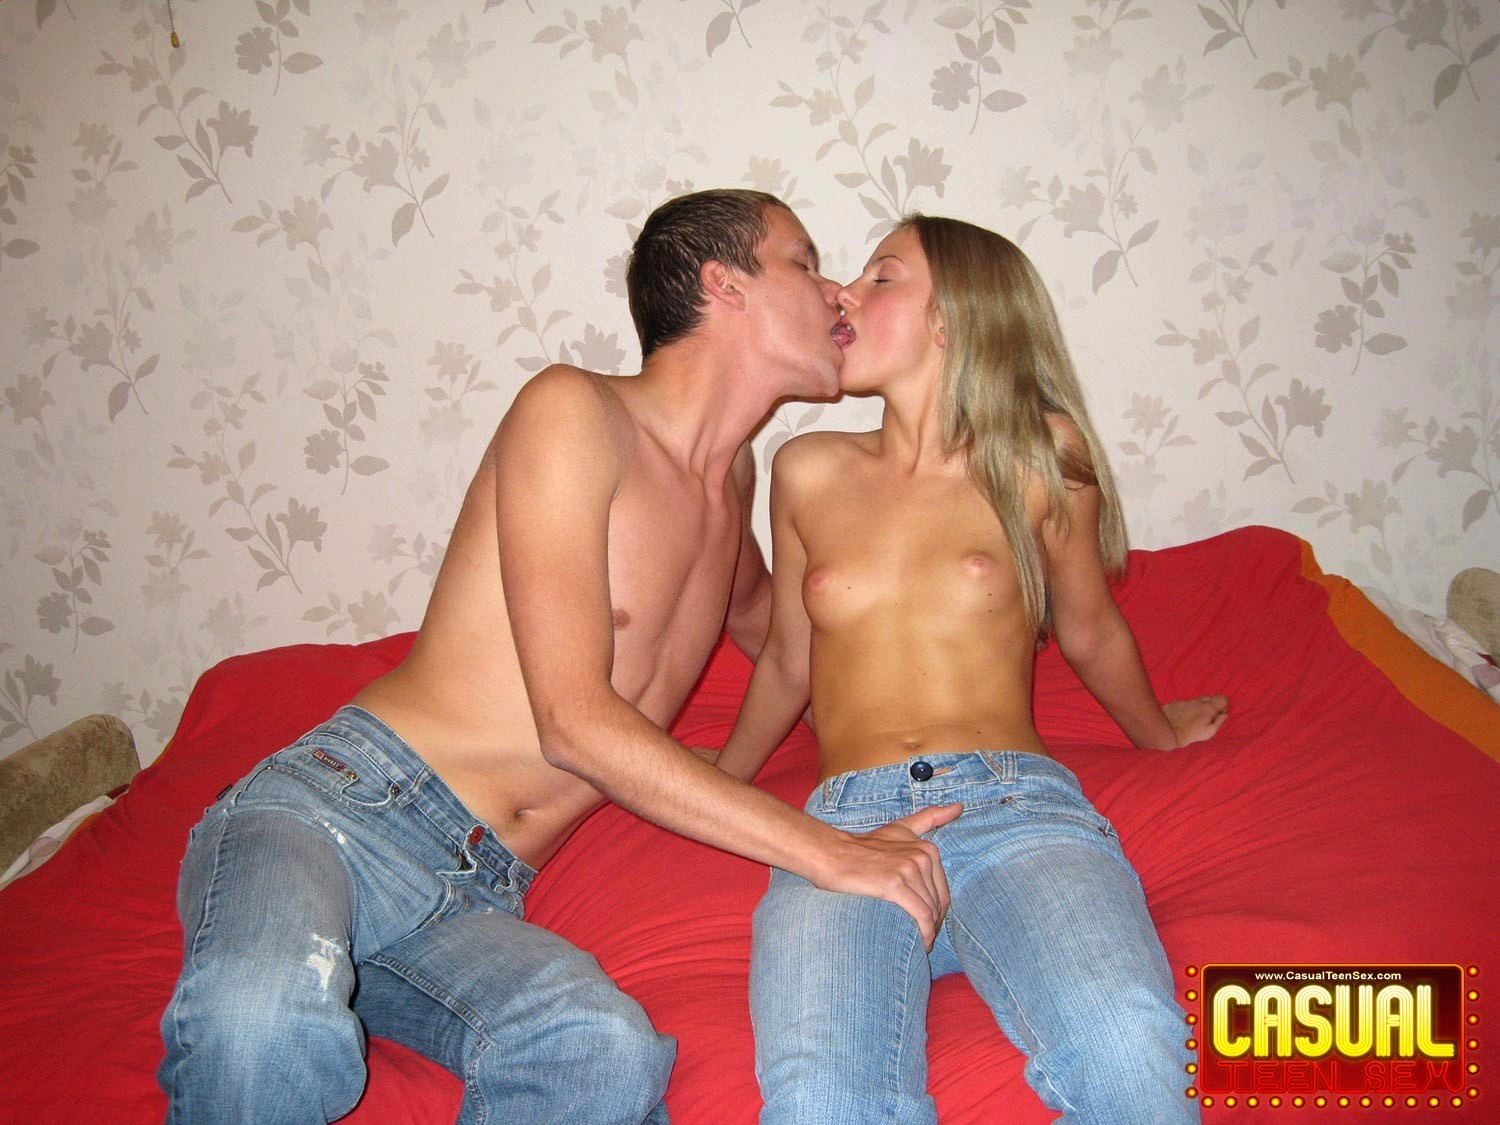 Casual teen sex fucking with a real gentleman - 1 part 9